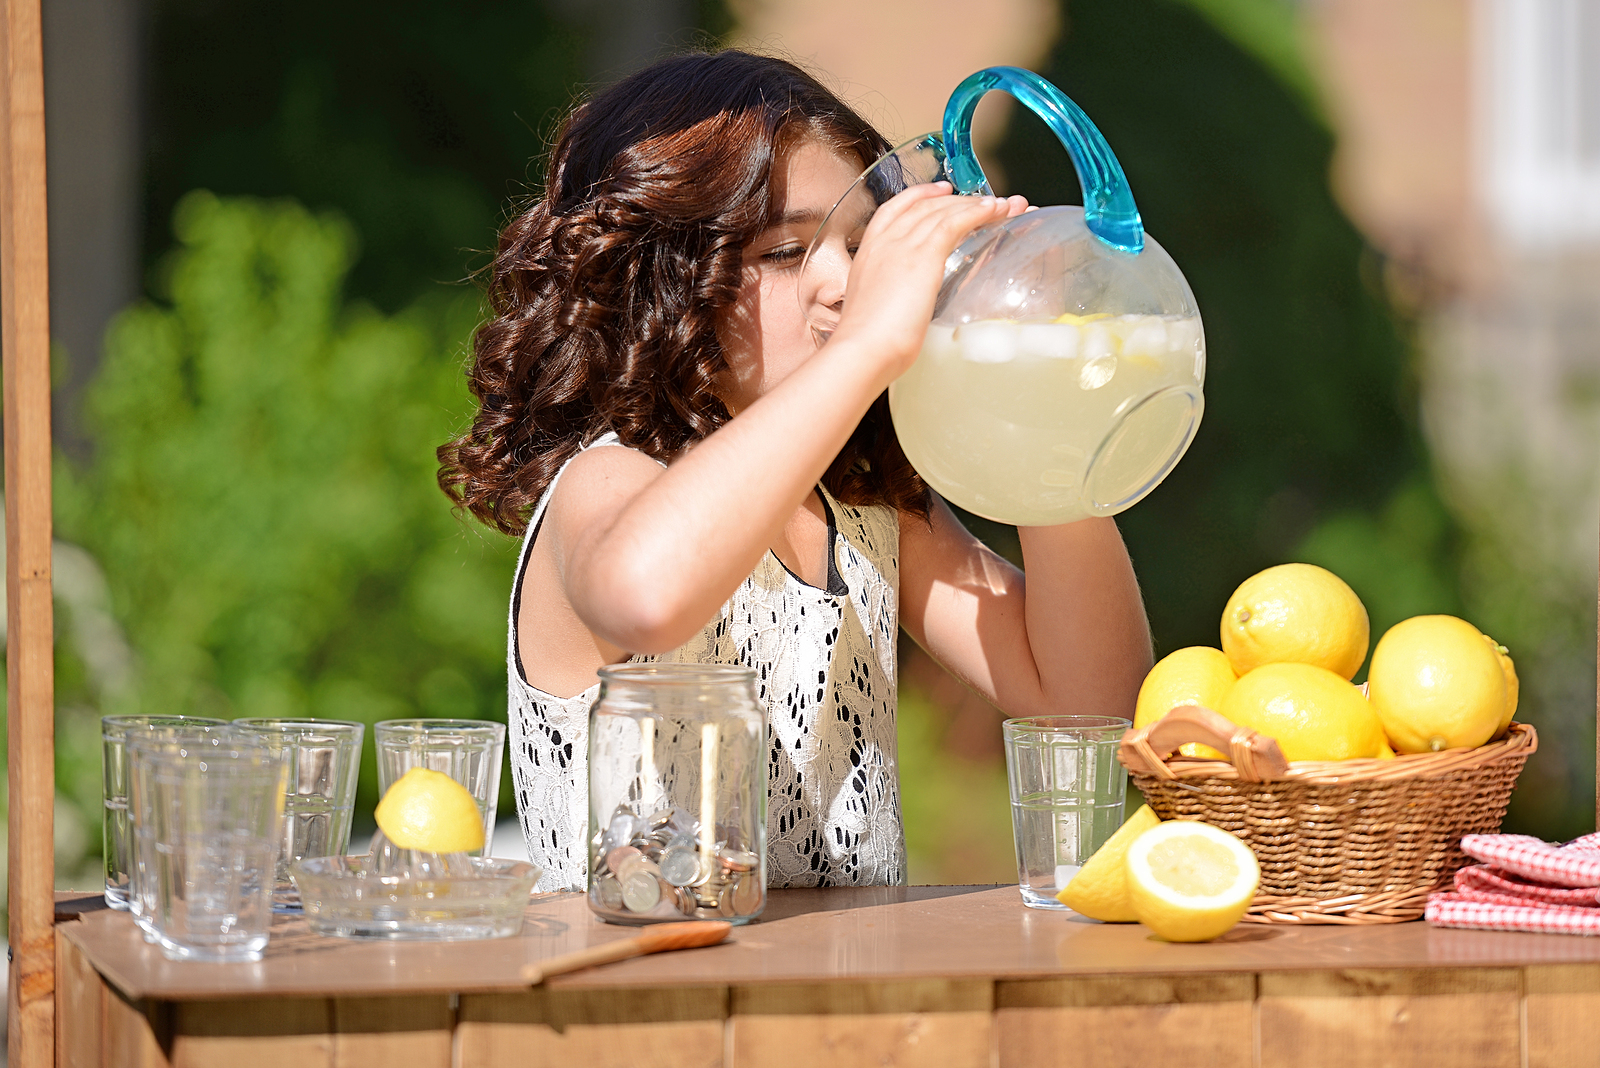 Grab your kids, and make one of these delicious lemonade recipes.